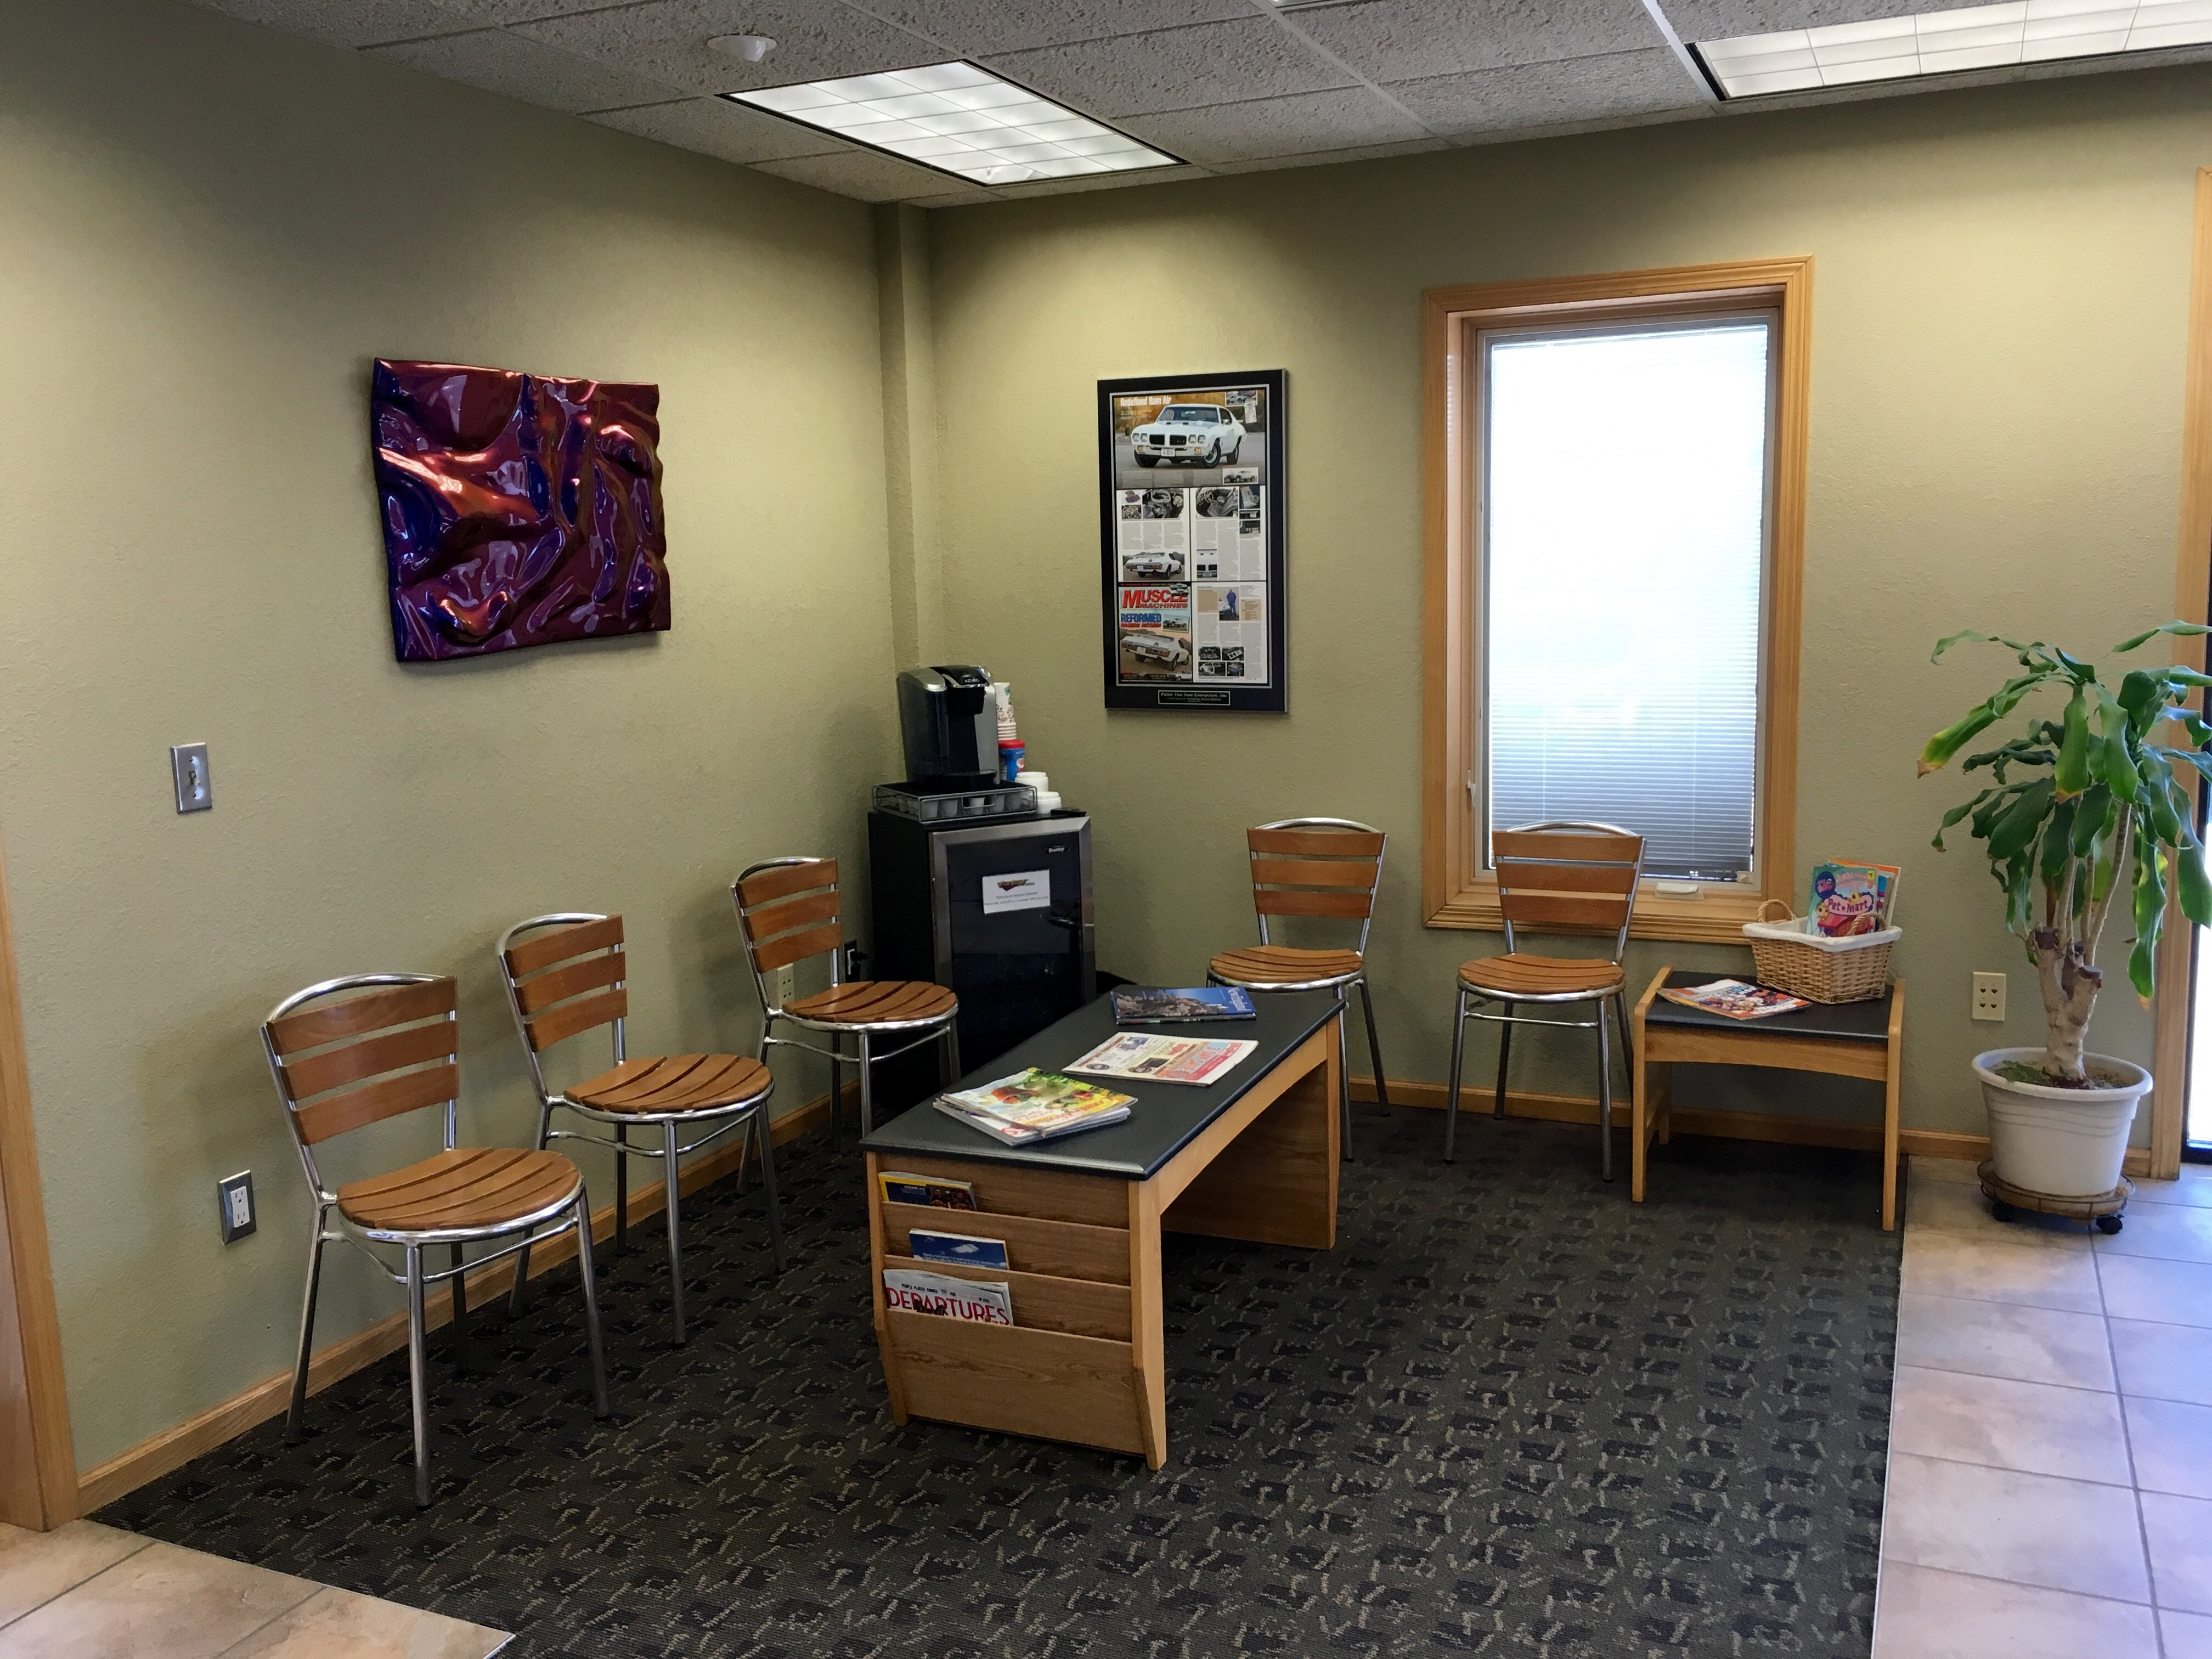 A clean, comfortable customer area illustrates Van Sant Collision's commitment to professionalism and customer service.